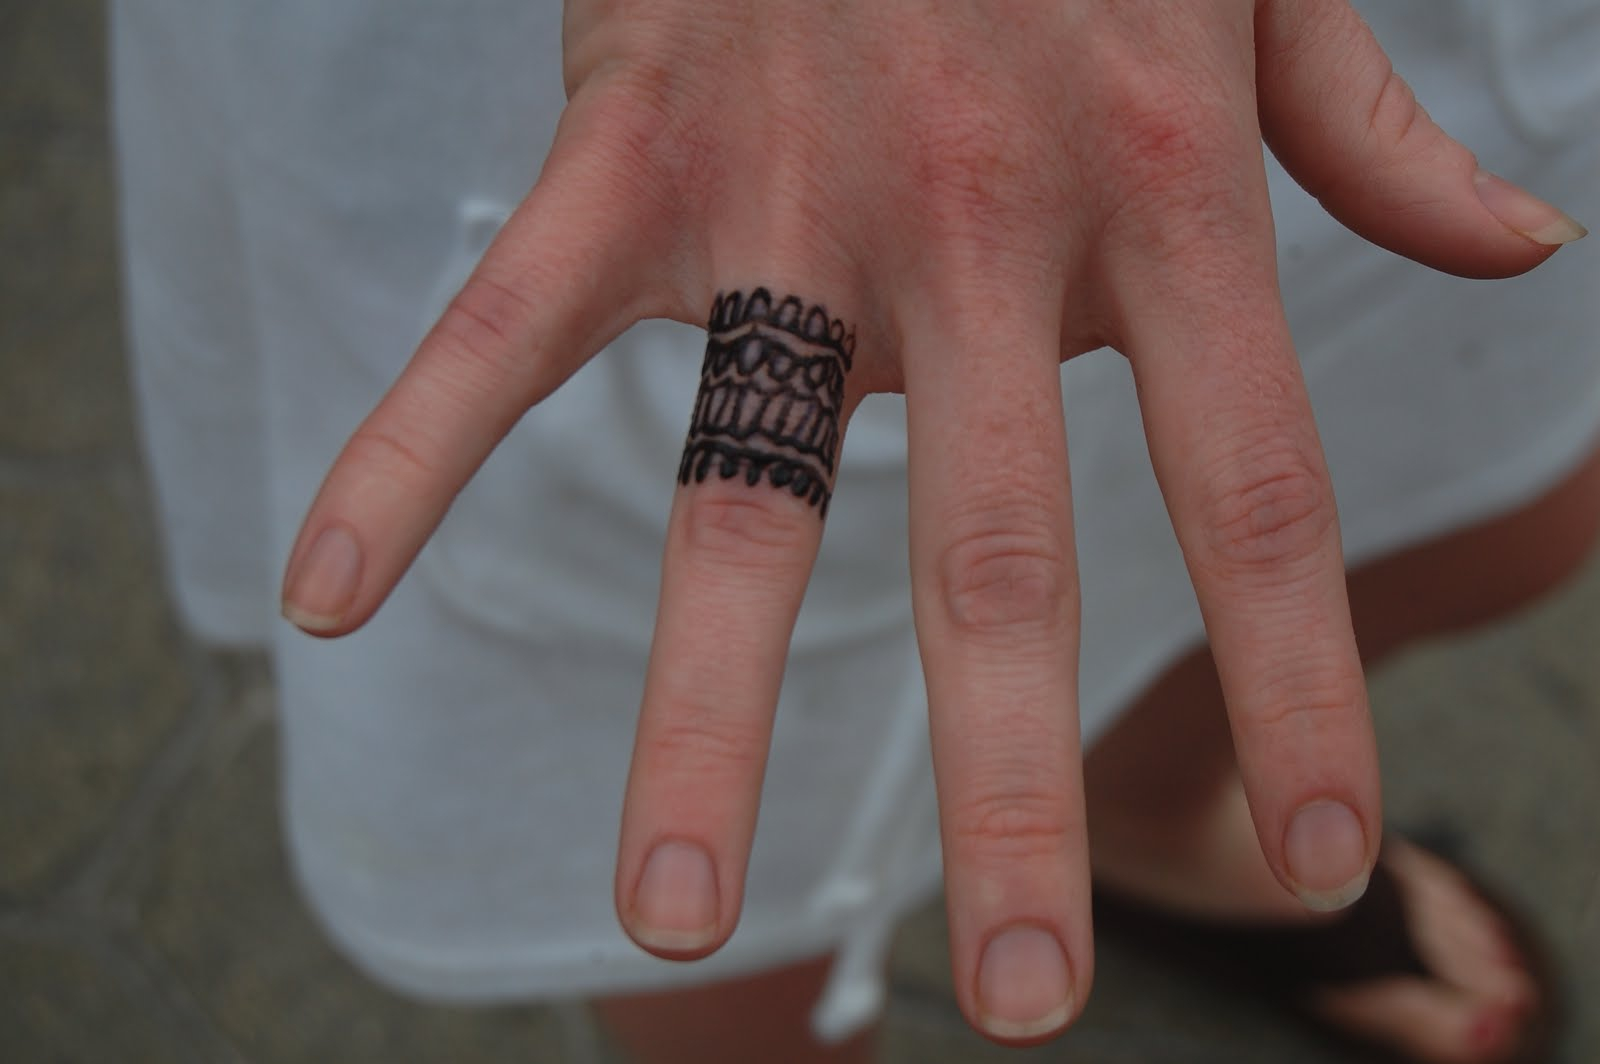 f5318054191d5 Amazing Ring tattoo. Image Source: Jisise